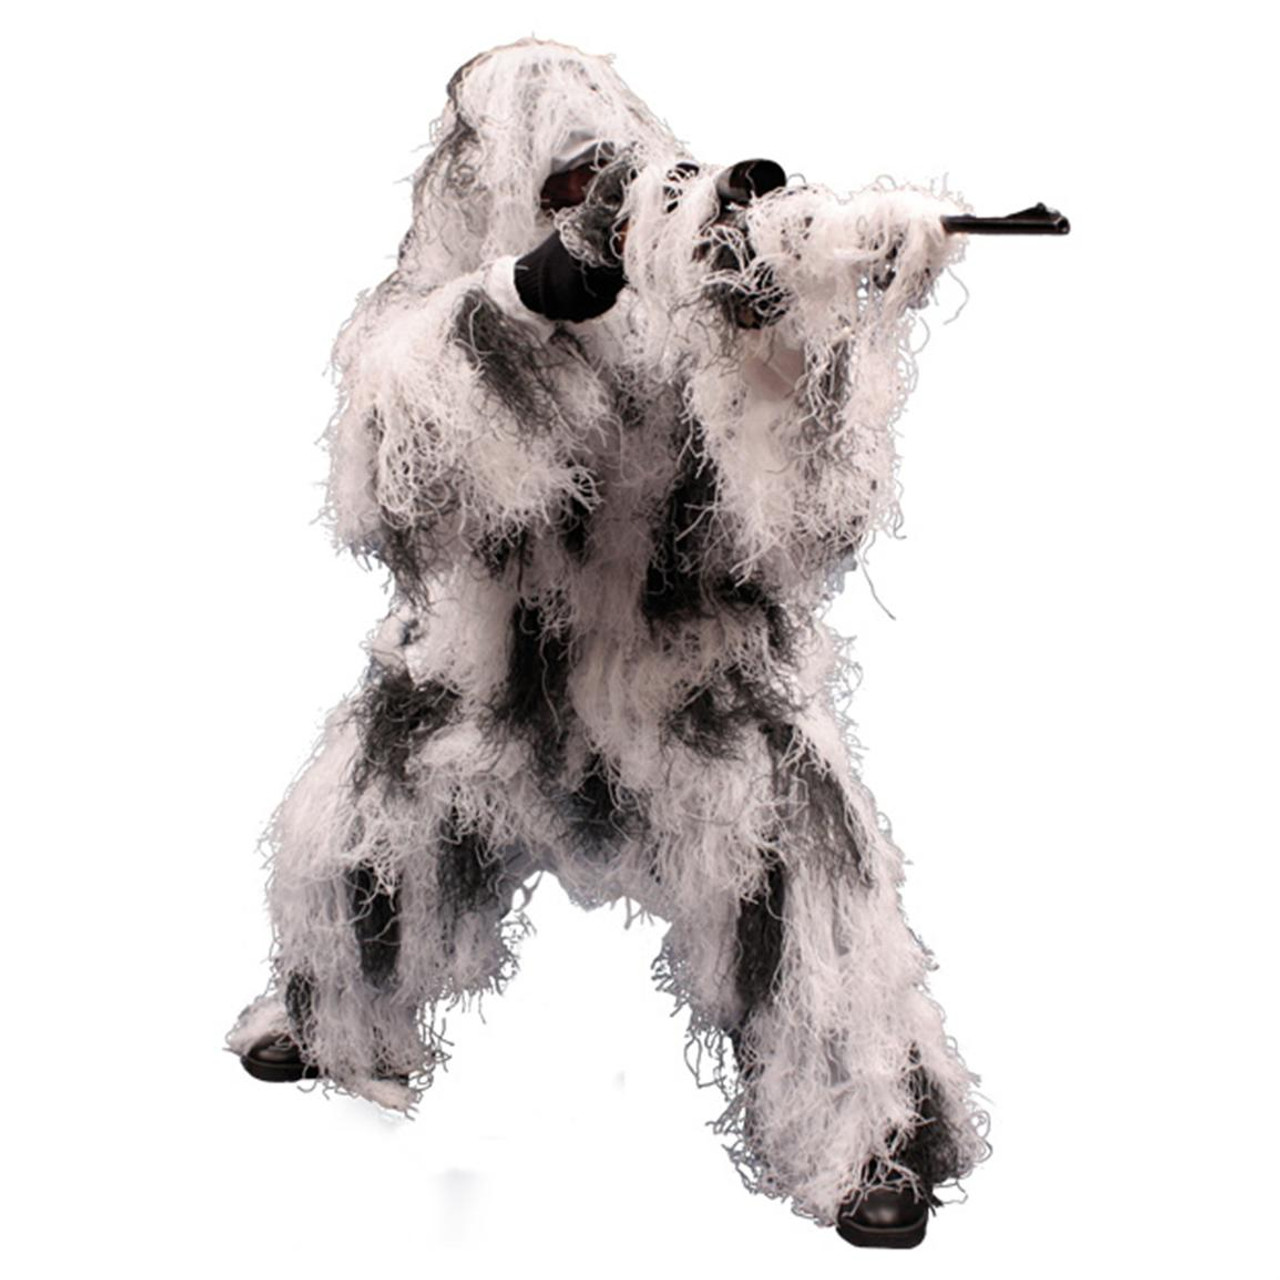 Red Rock 5 Piece Ghillie Suit (Snow) - Medium/Large